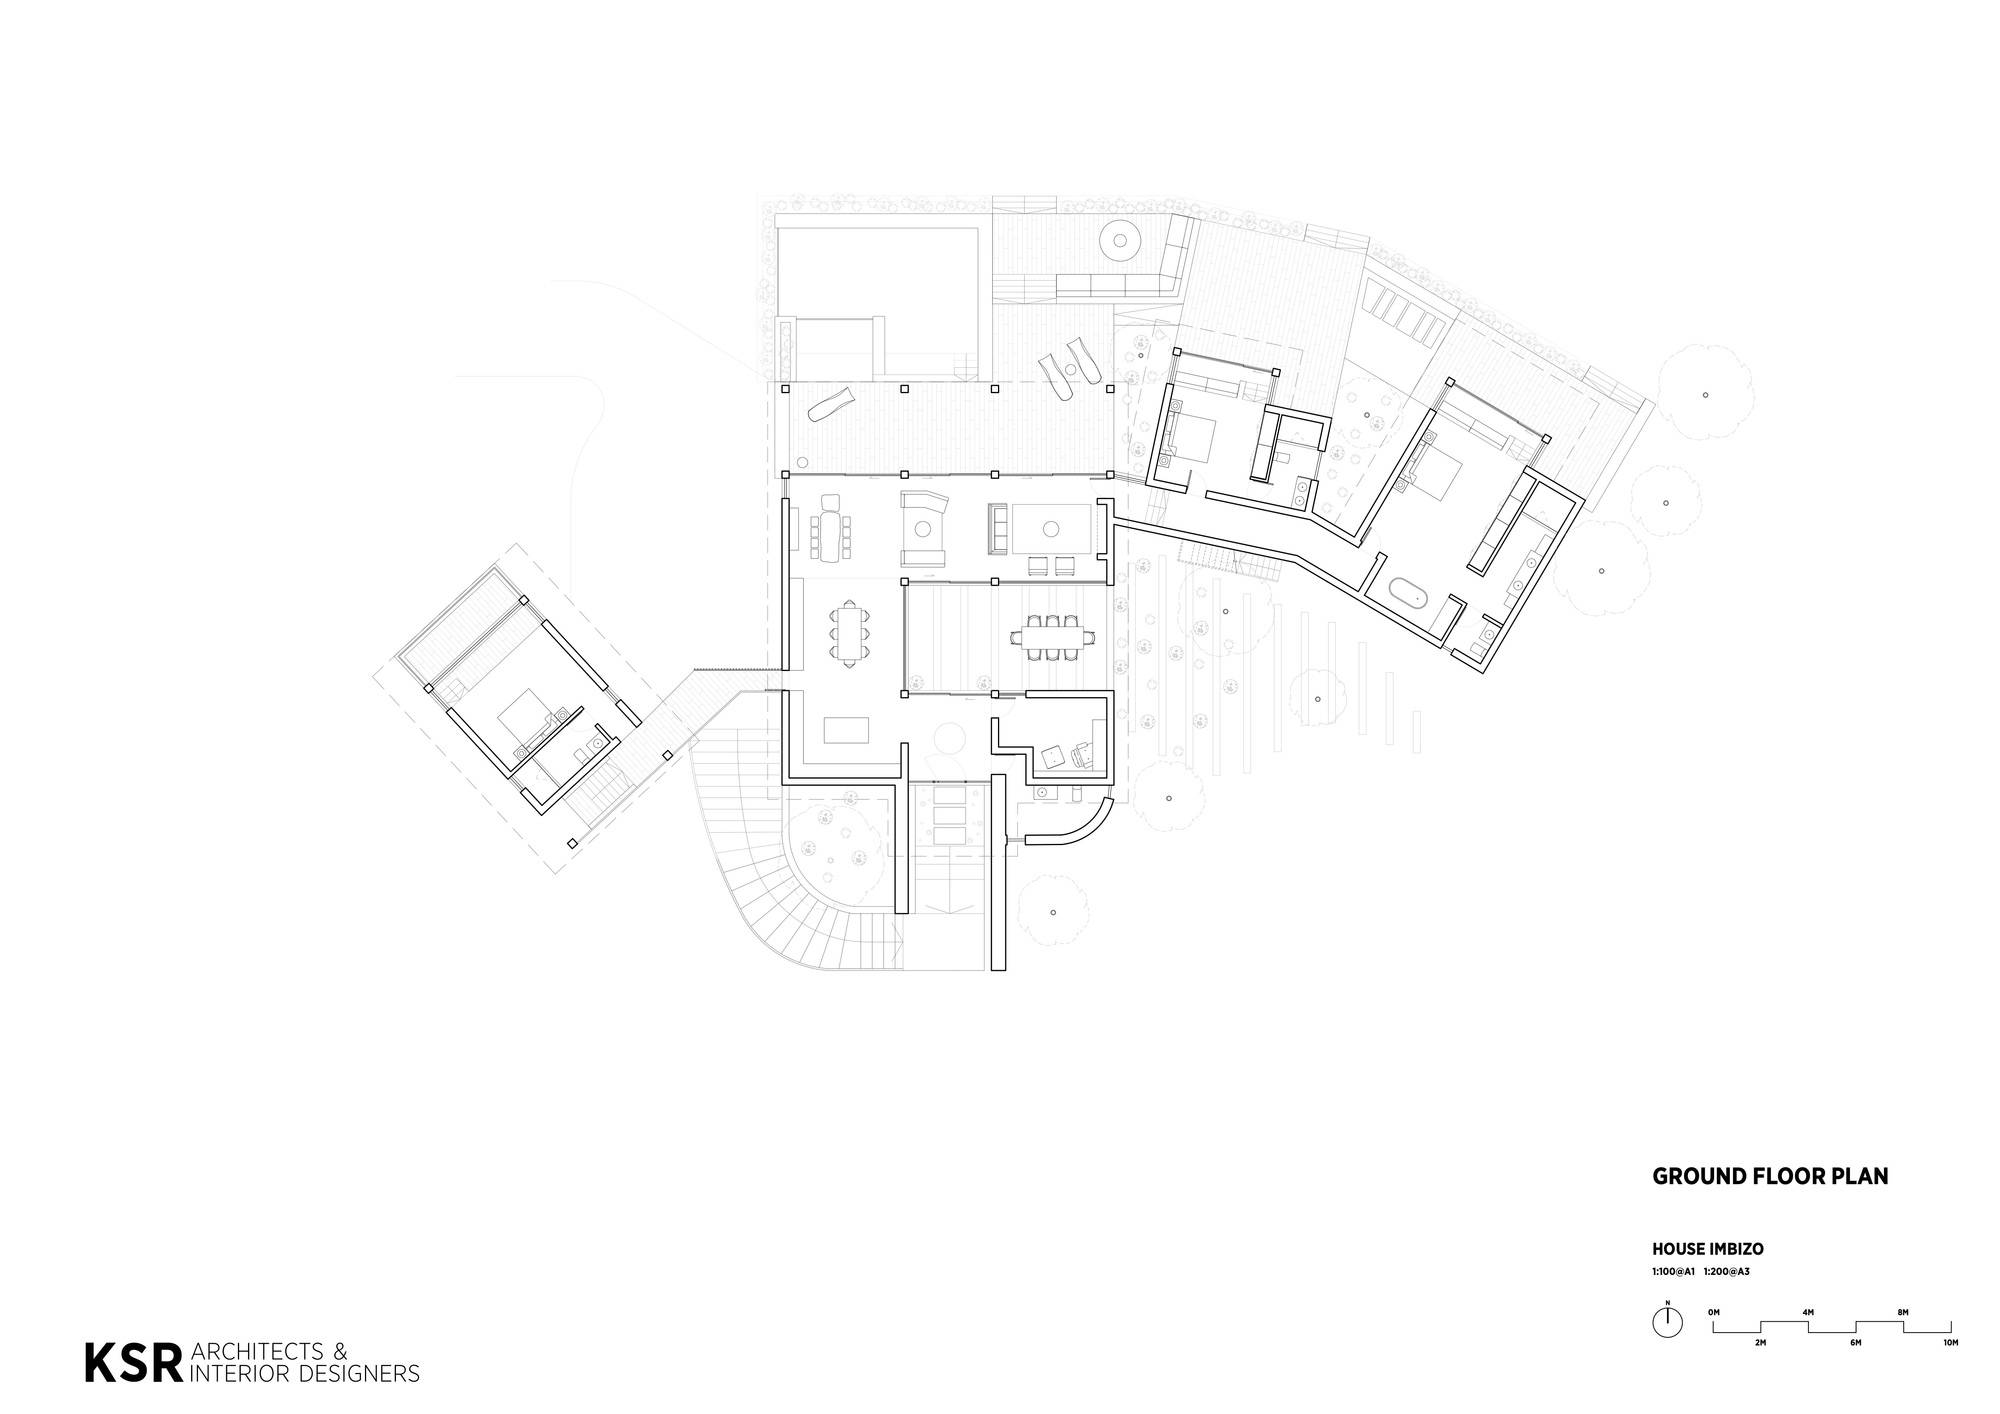 Ground floor plan of the contemporary Imbizo House